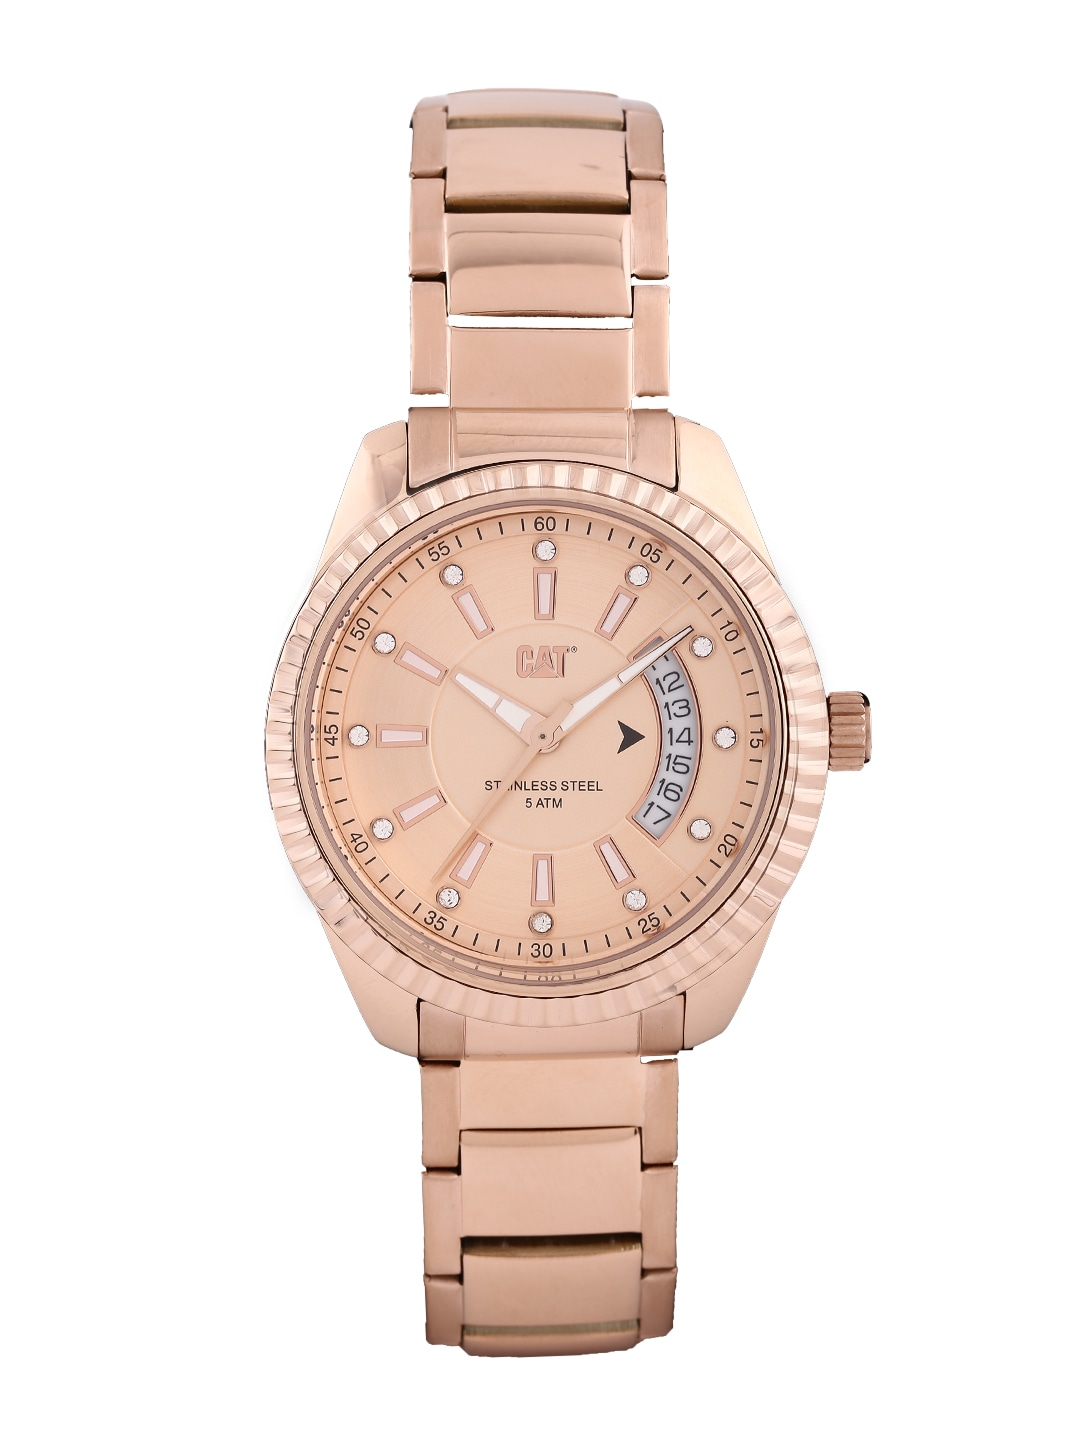 Cat CAT Women Rose Gold-Toned Dial Watch L4.391.19.929 (Yellow)